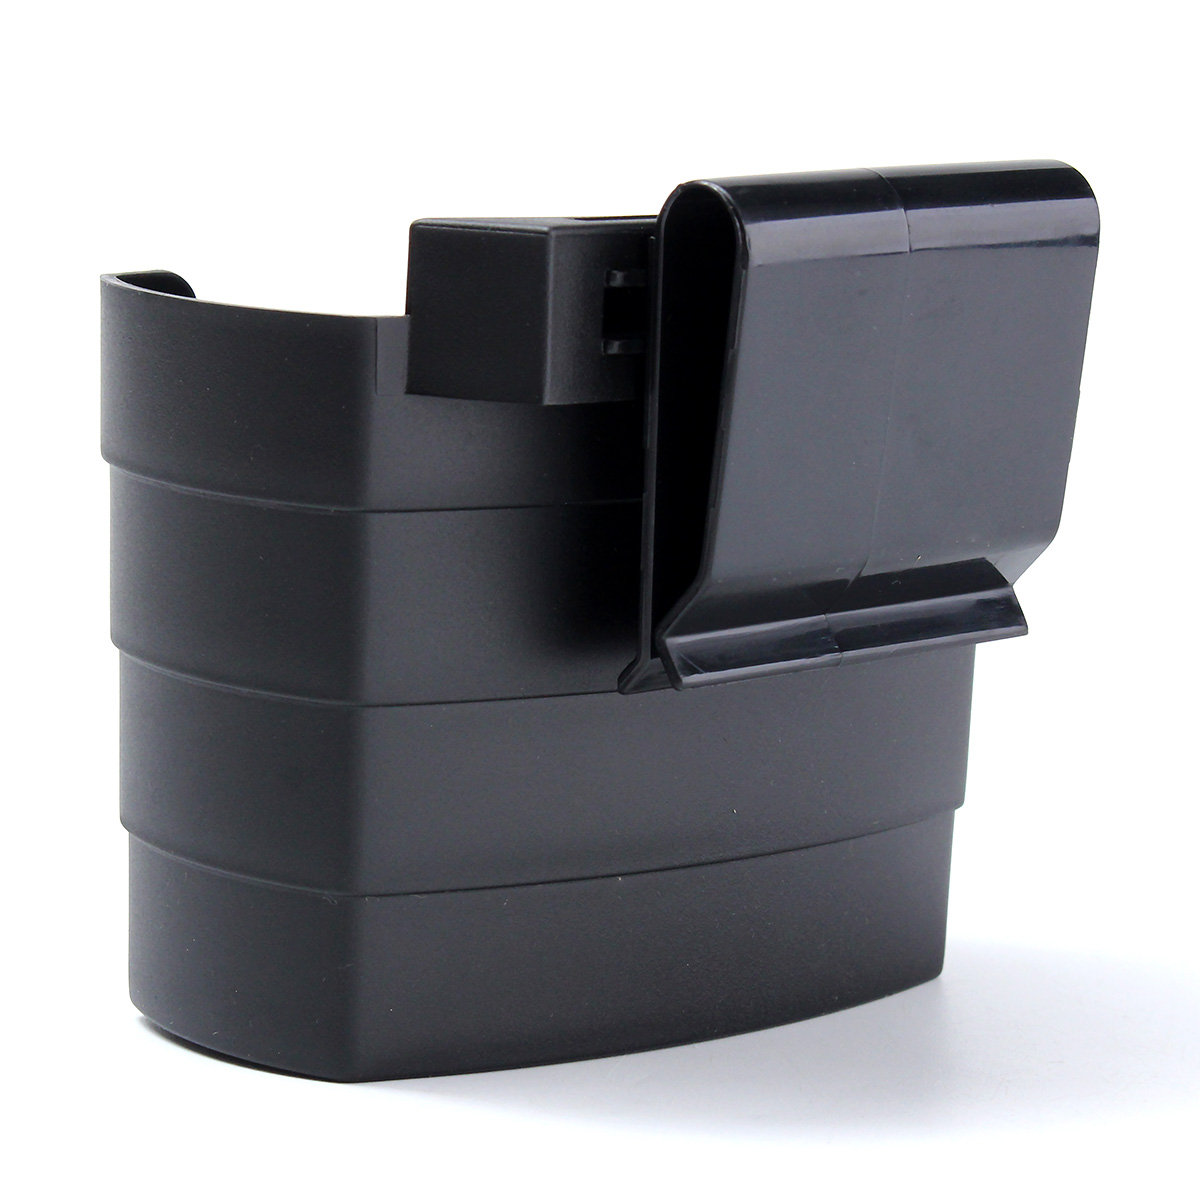 Car_Bracket_French_Fry_Holder_Cup_Holding_Mobile_Phone_Storage_Box